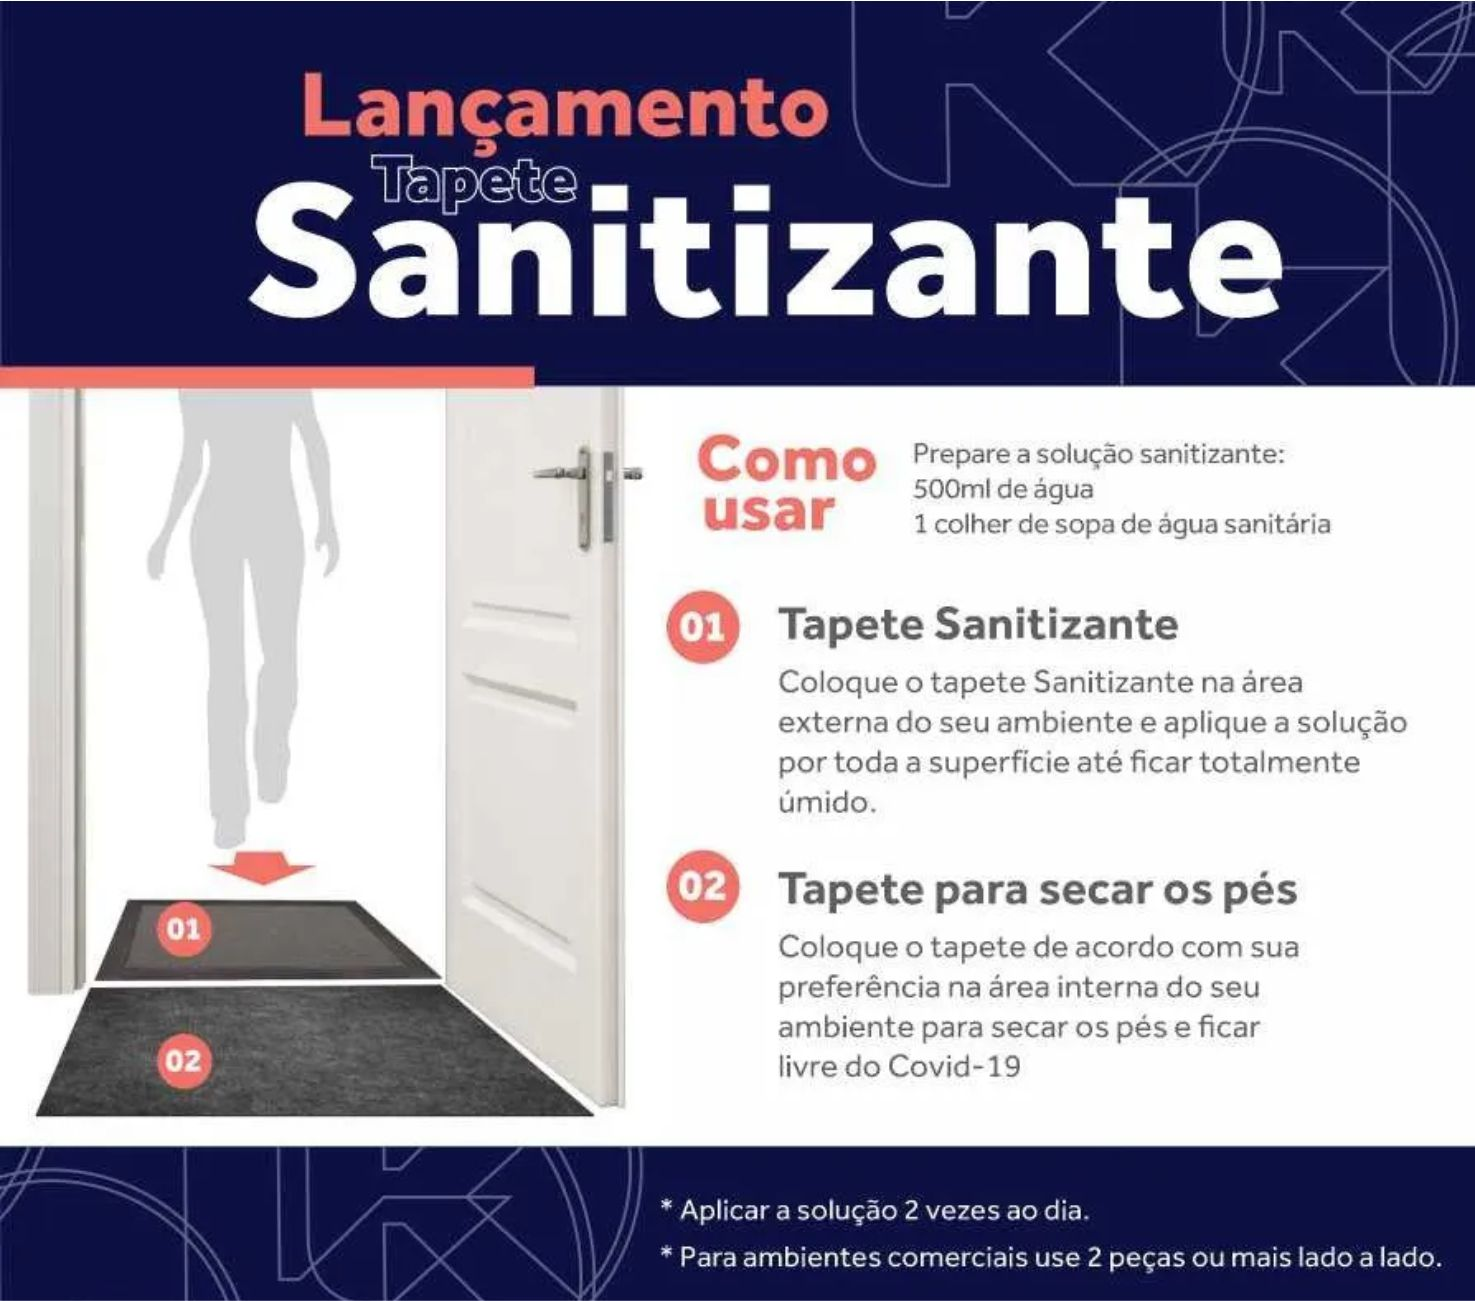 Tapete Sanitizante kit ( 1 Tapete Sanitizante + 1 Tapete Home agulhado )